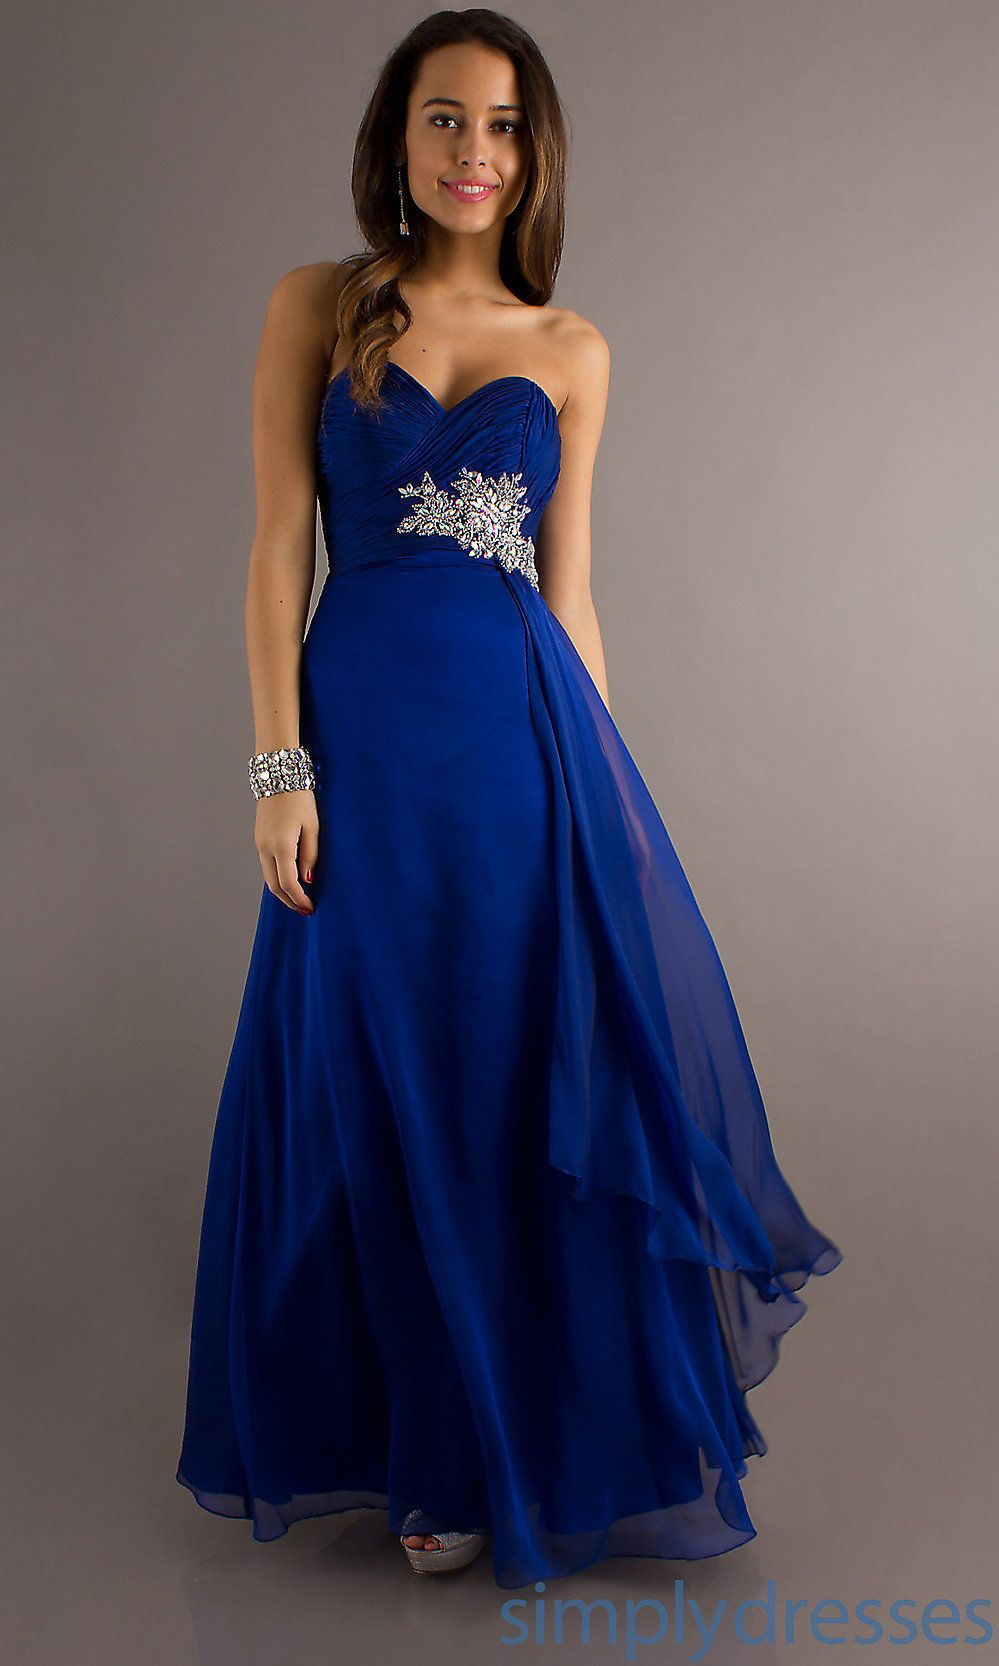 Bridesmaid Dresses Royal Blue And Silver 1 | bridesmaid dresses ...